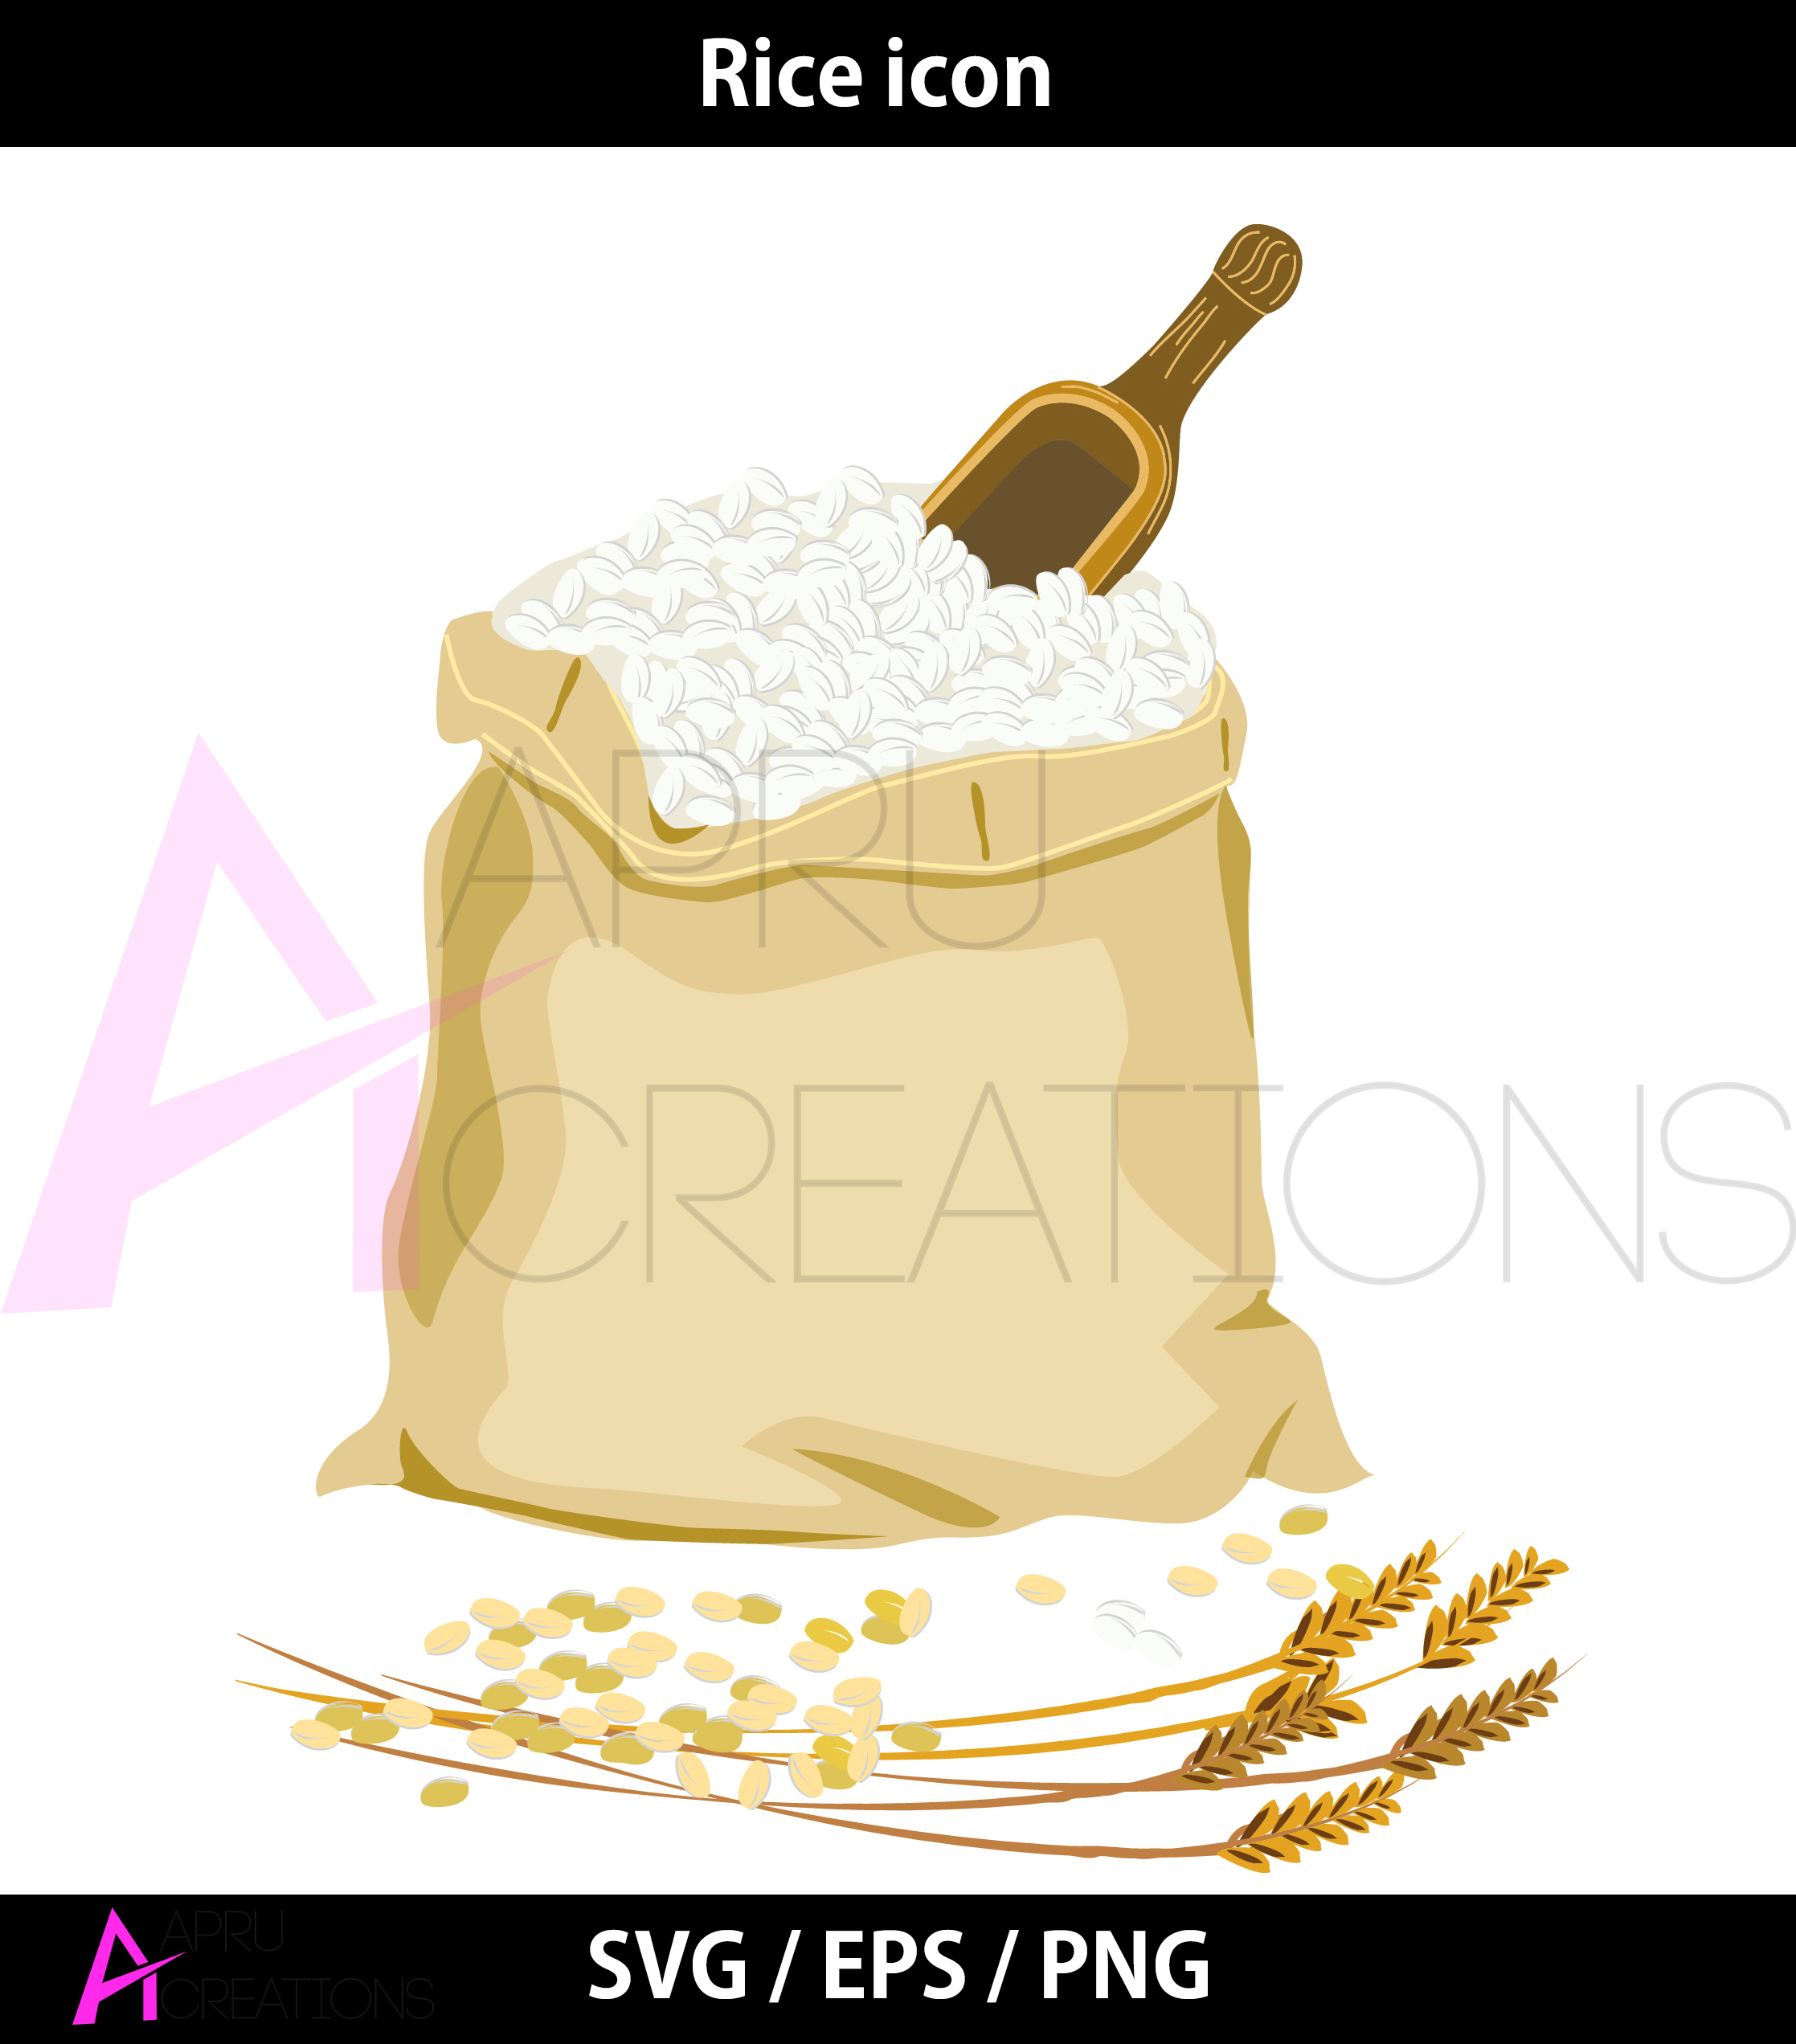 2235x2544 Web Icon Svg Vector Rice And Wheat Vector Icon, Commerical Use